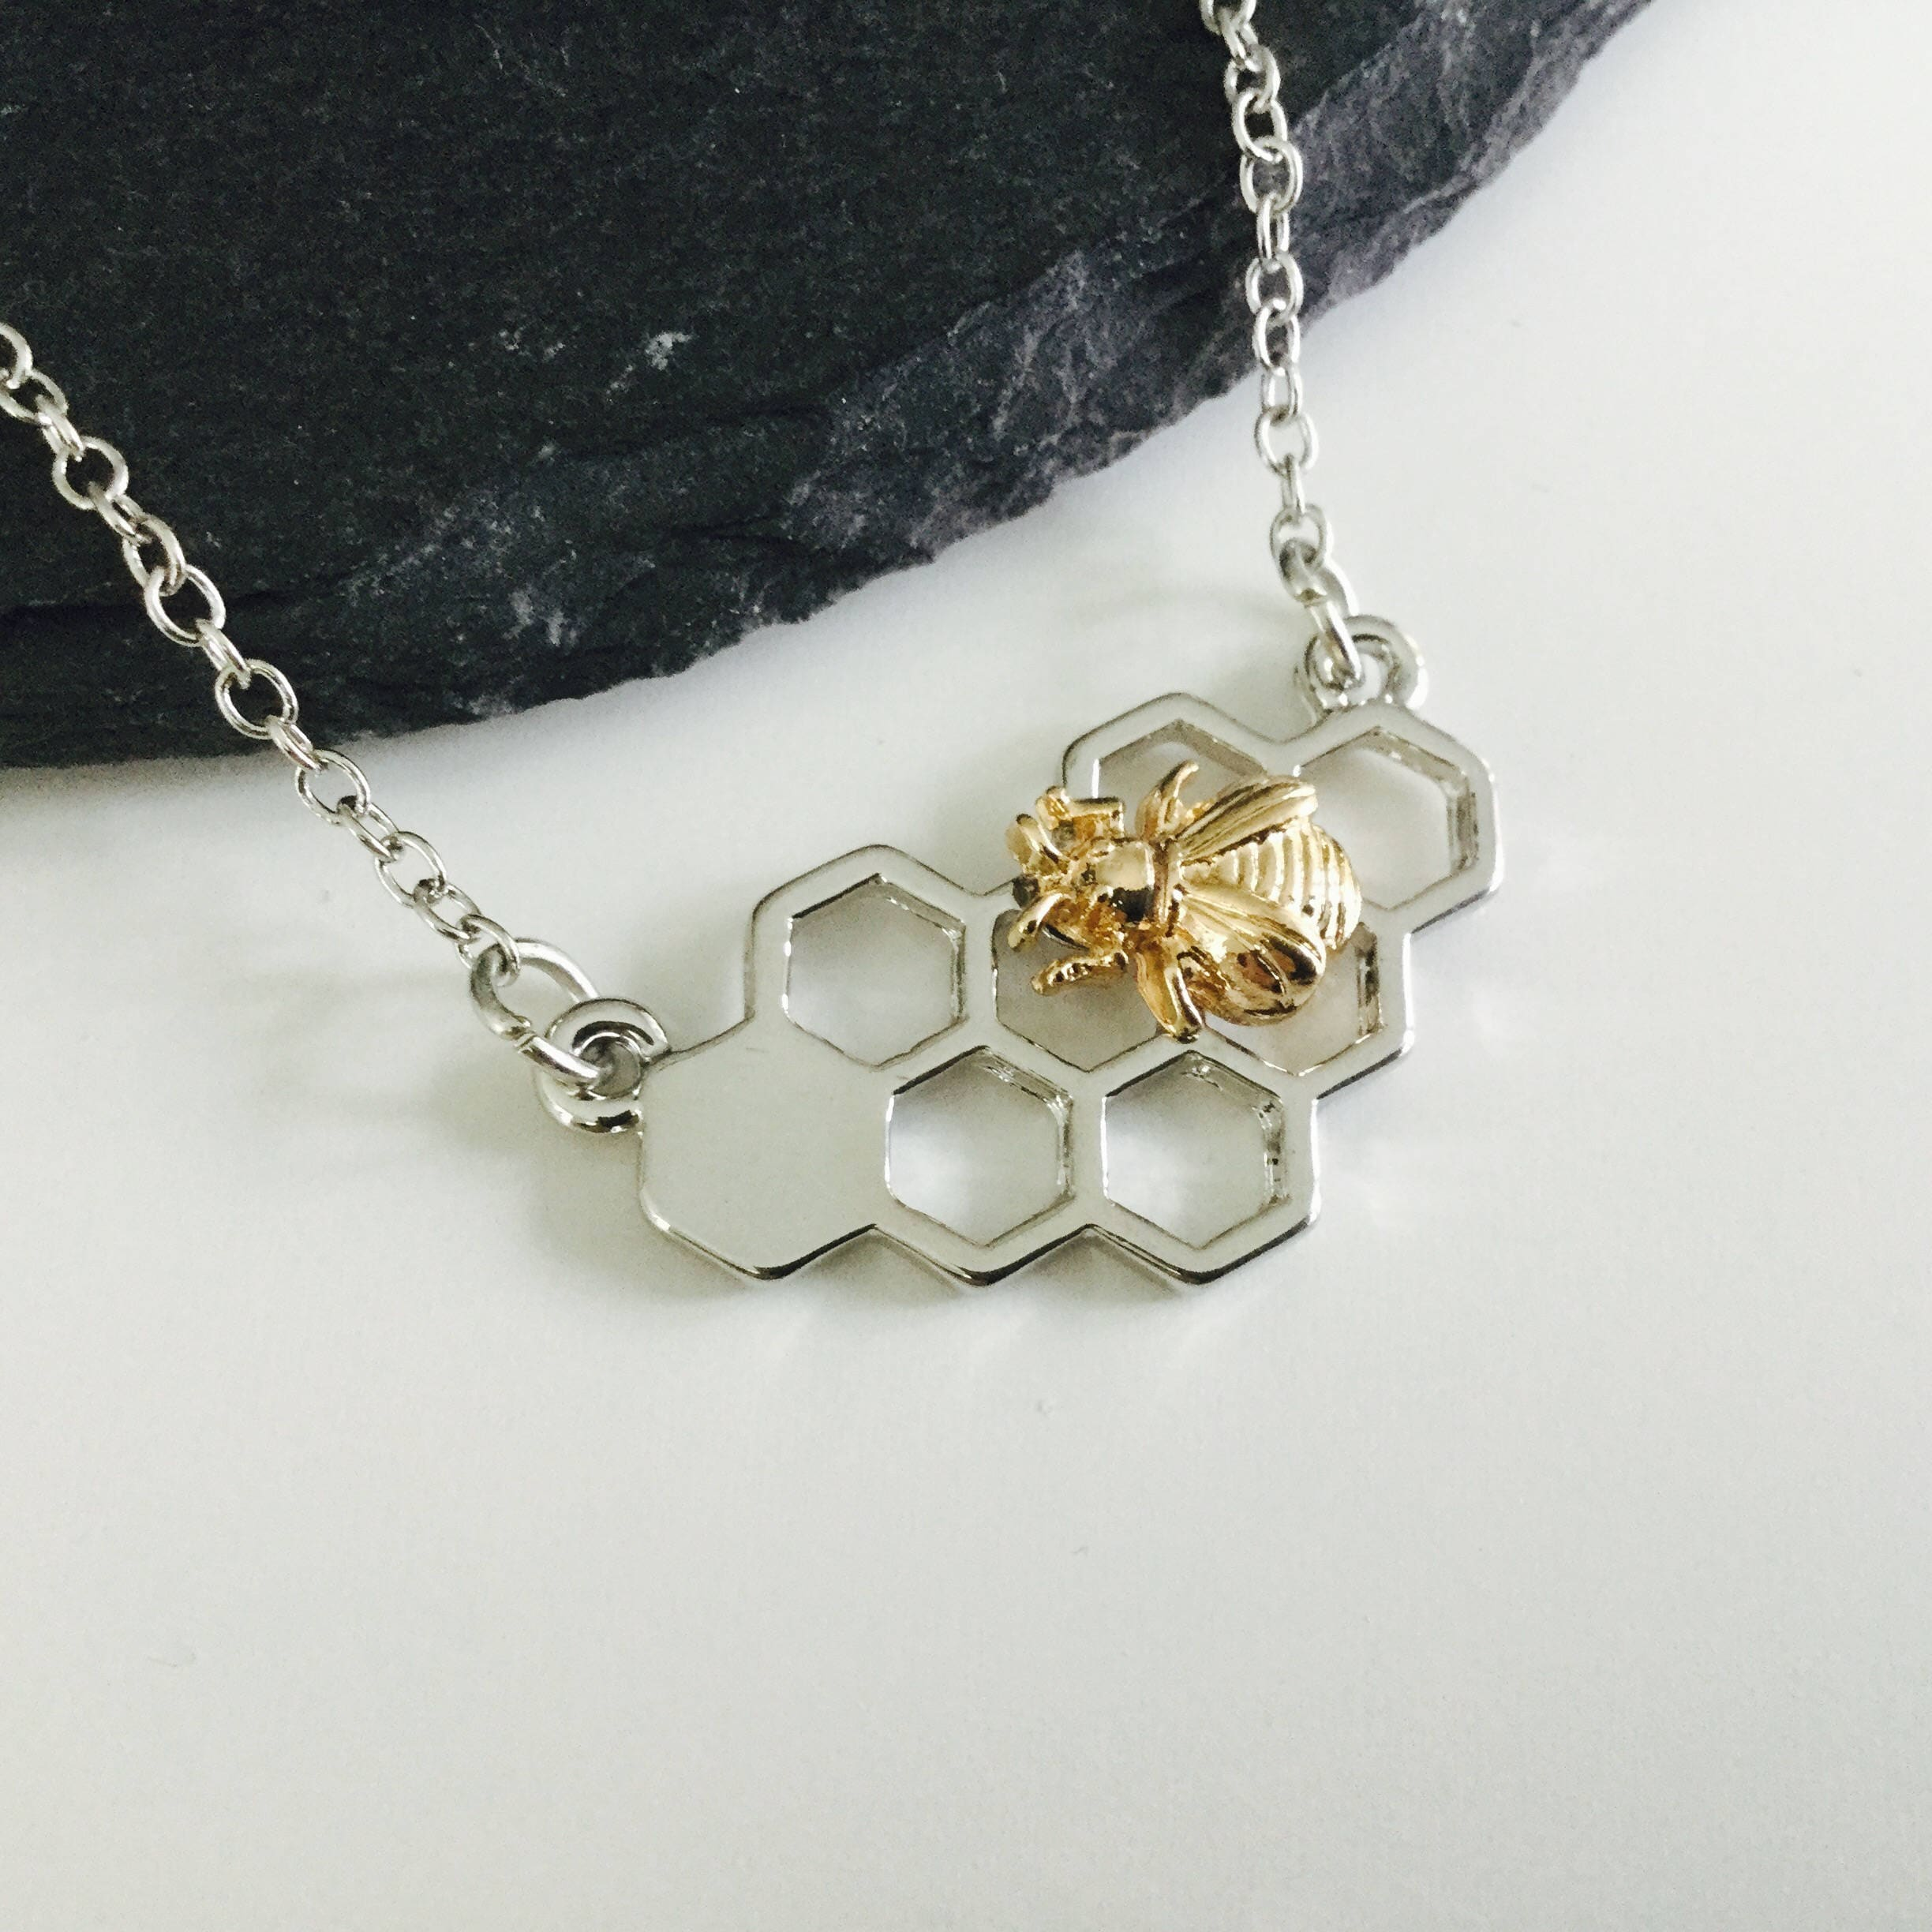 shop honeyvialnecklacehanging necklace home pendant vial products jewelry bee honey necklaces